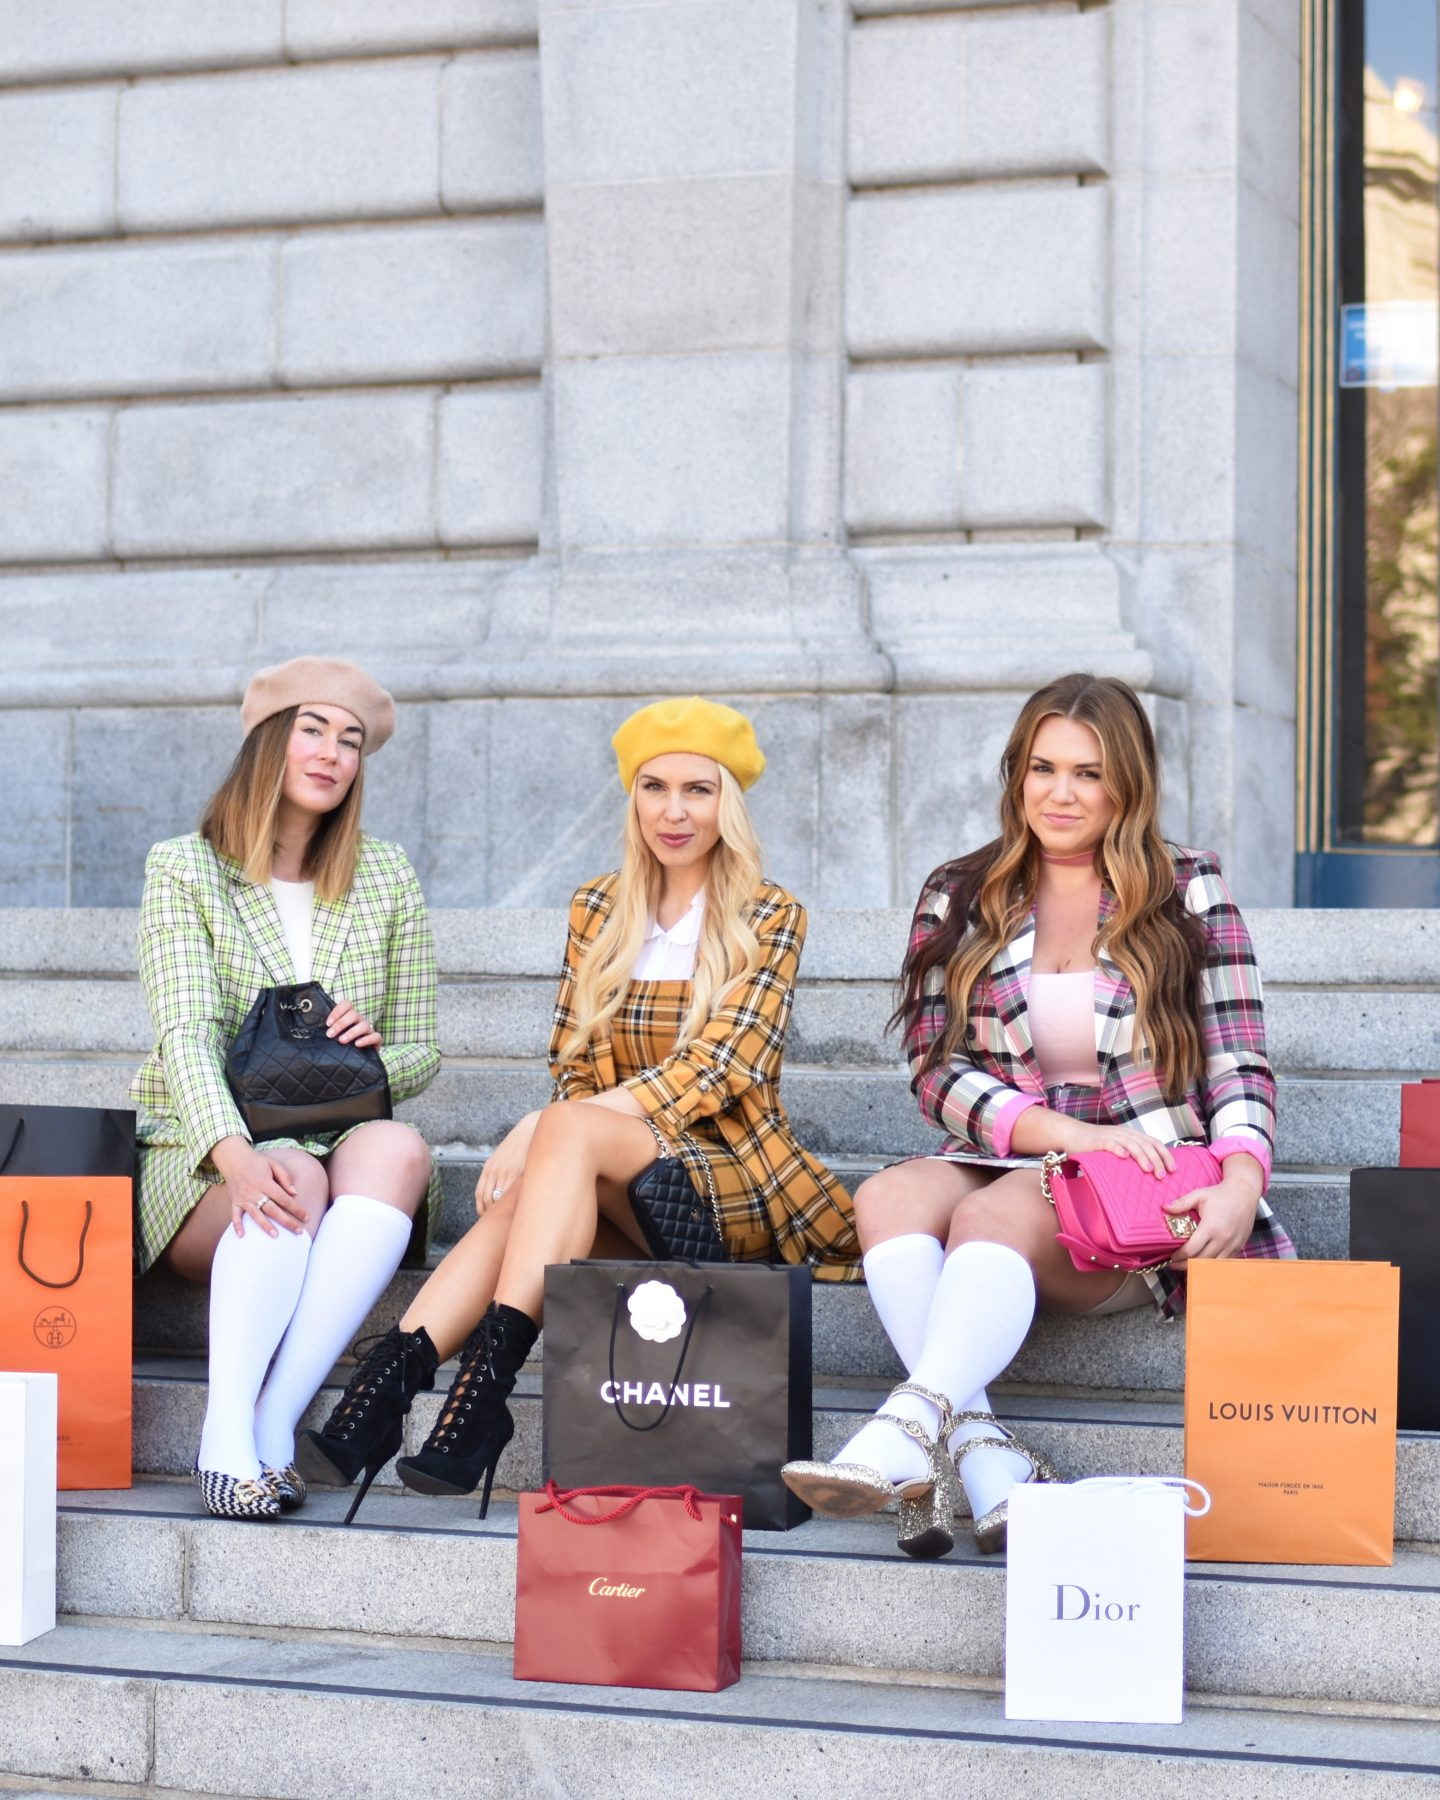 Friends | Halloween | Chanel | Gucci | Creative Clueless Halloween Costume Ideas featured by San Francisco fashion blog Lombard and Fifth